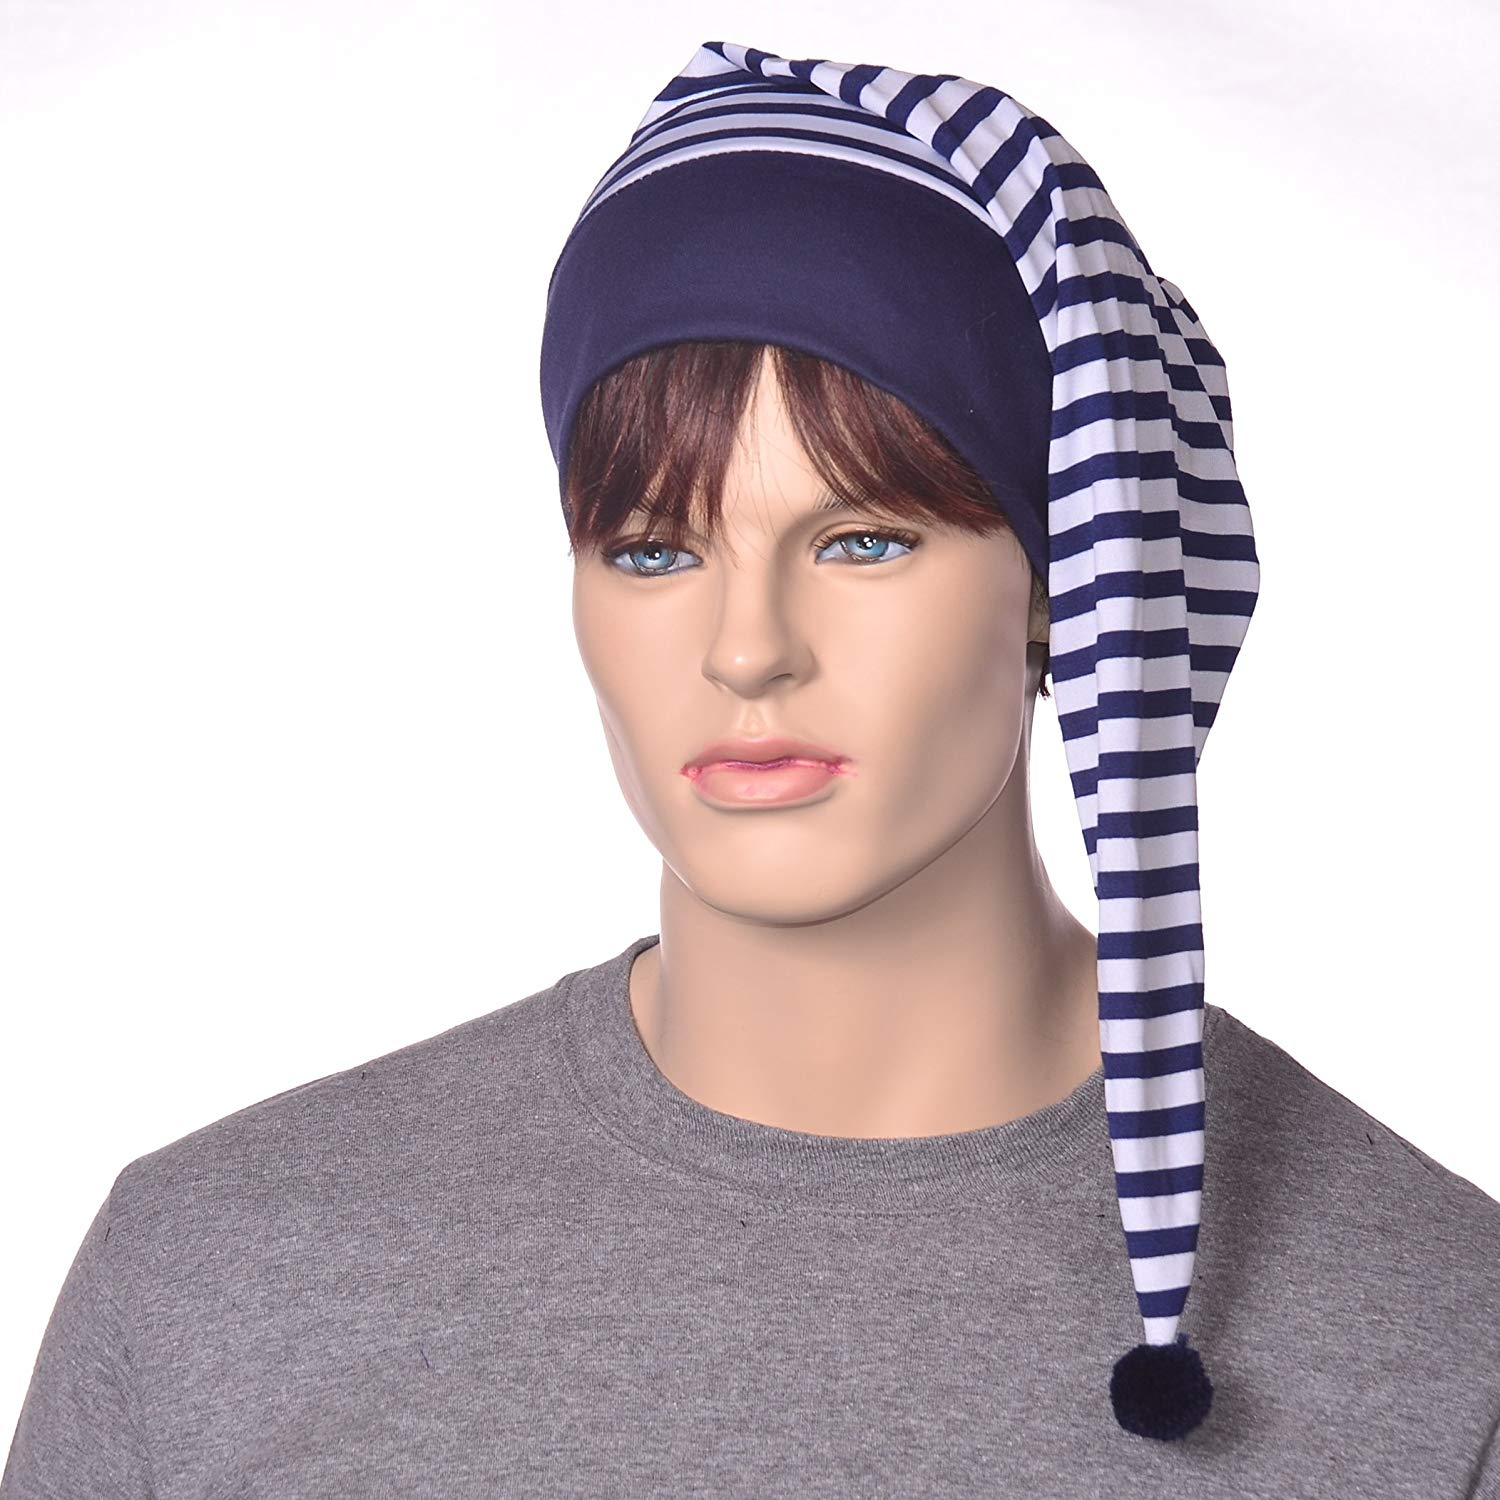 a2050c42a67 Navy Blue and White Striped Stocking Night Cap Unisex Lightweight